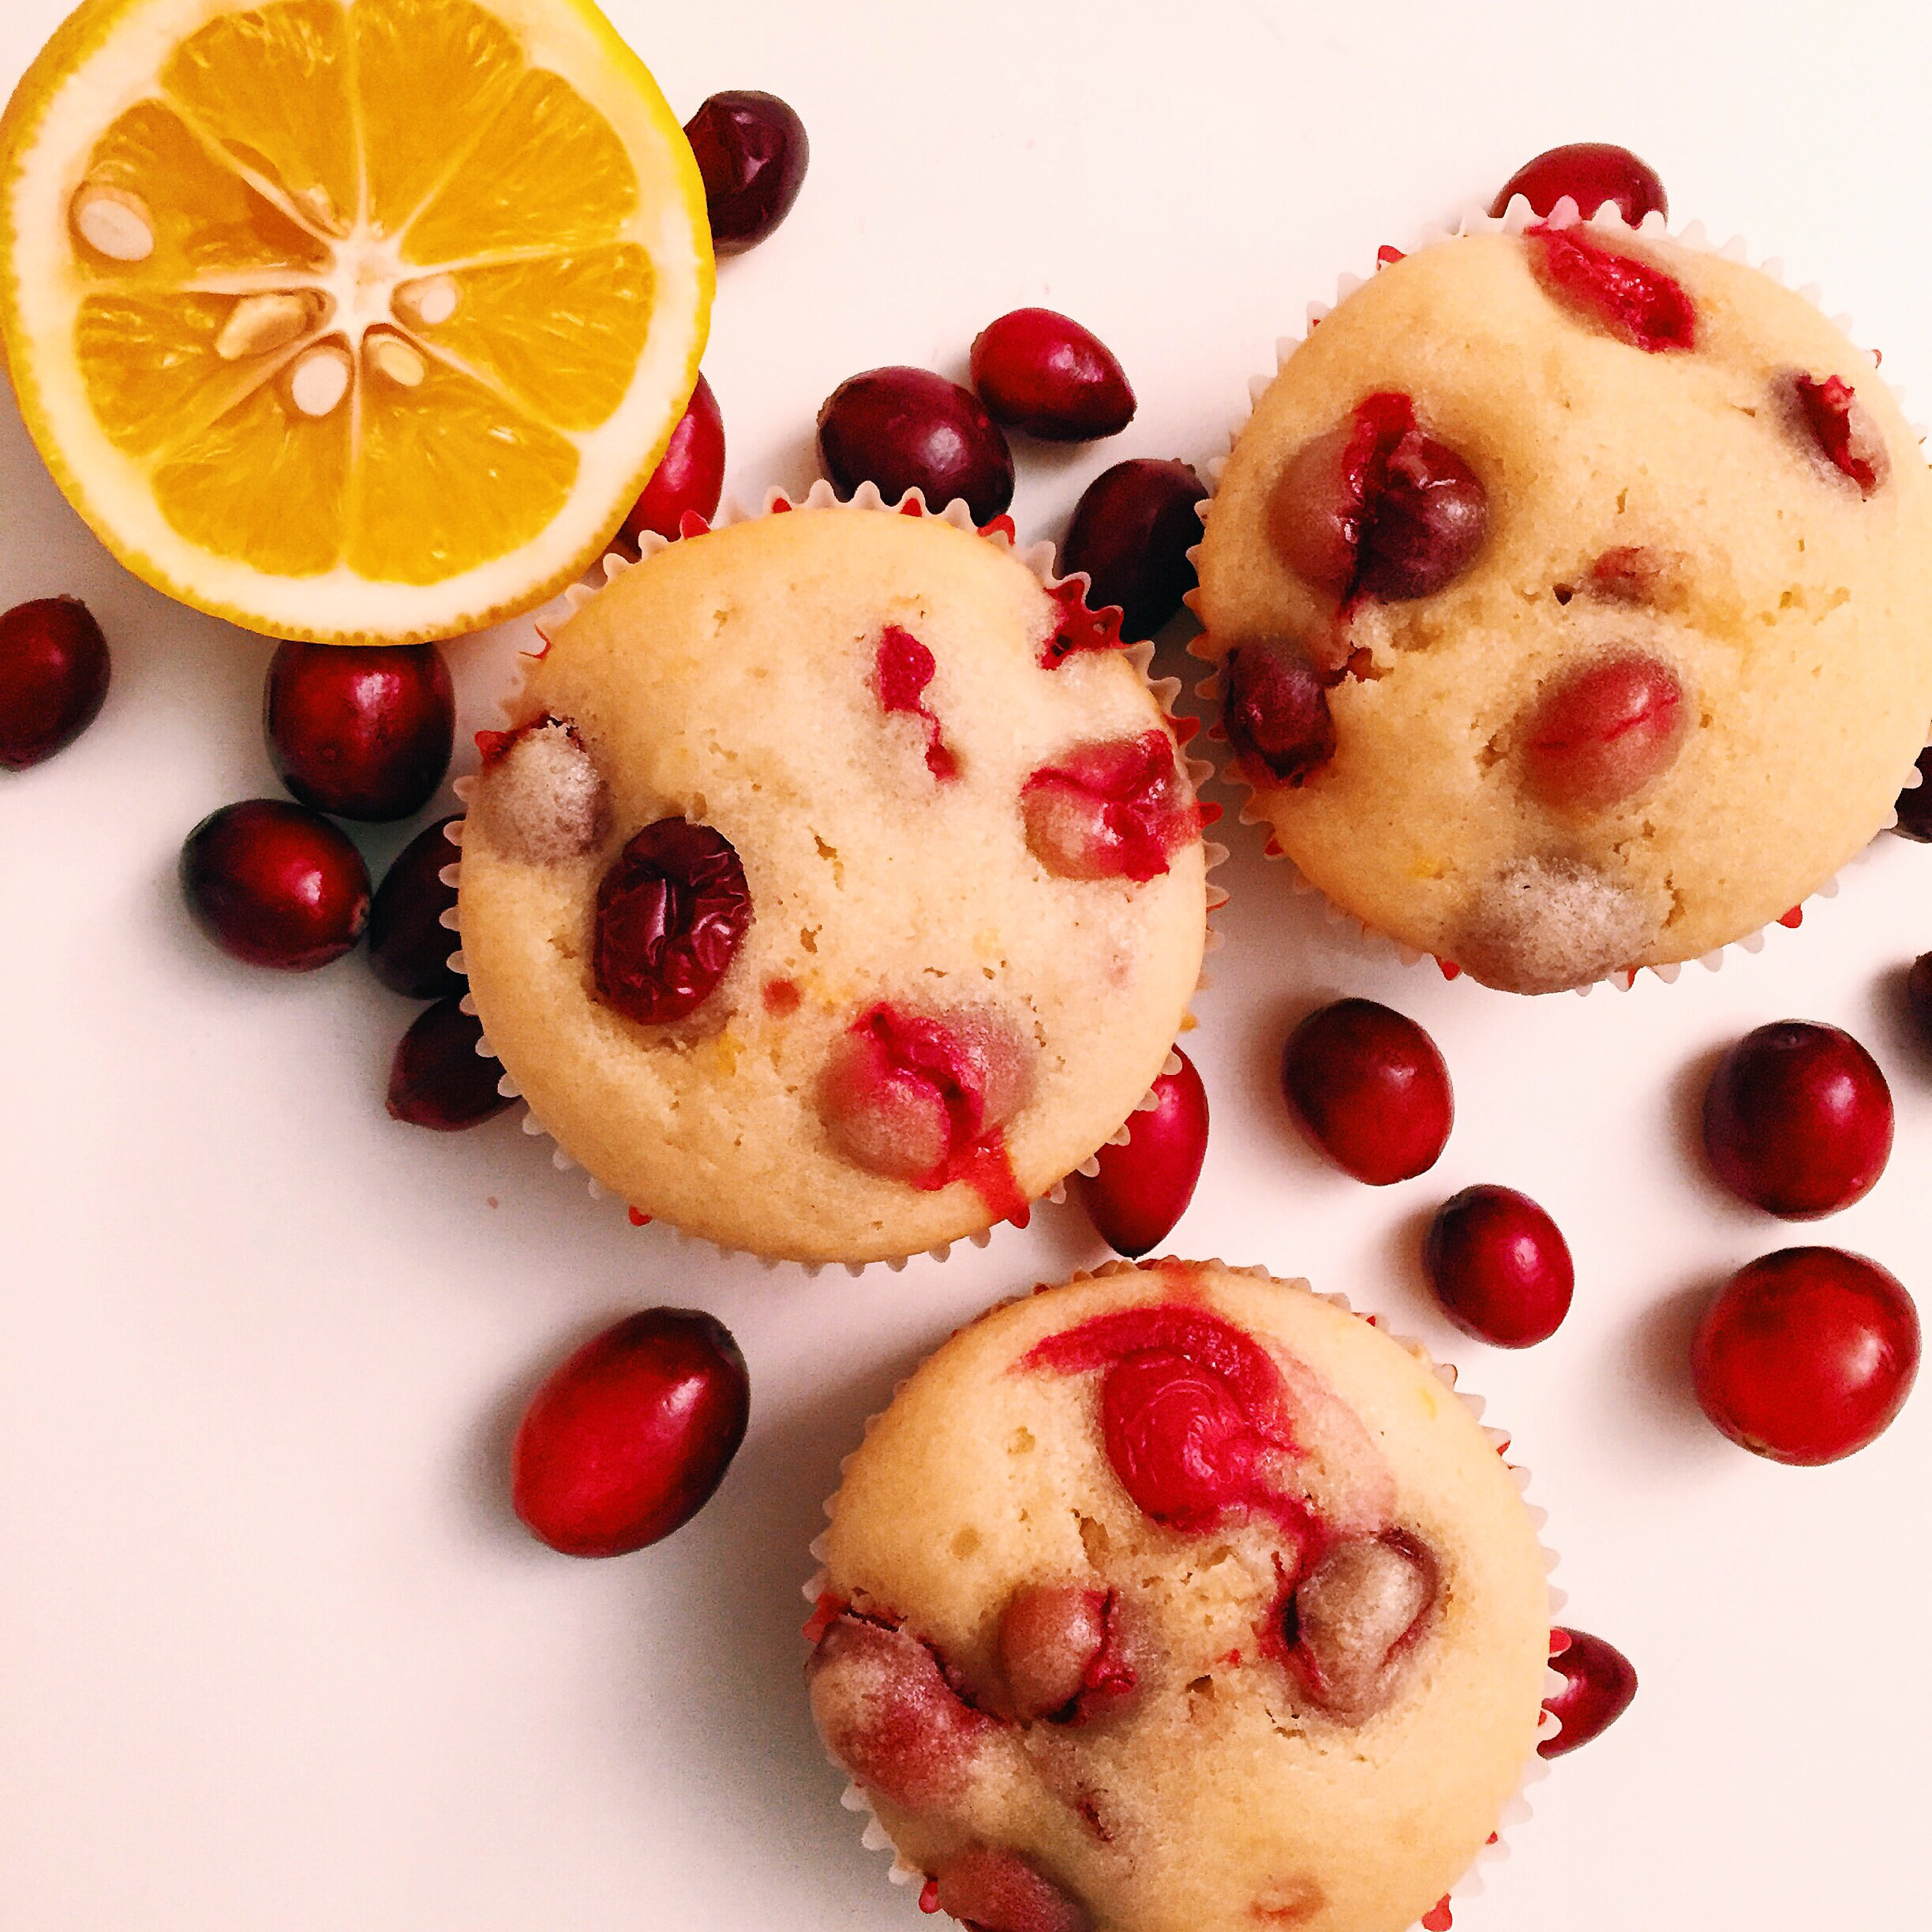 Cranberry muffins. Highly addictive!